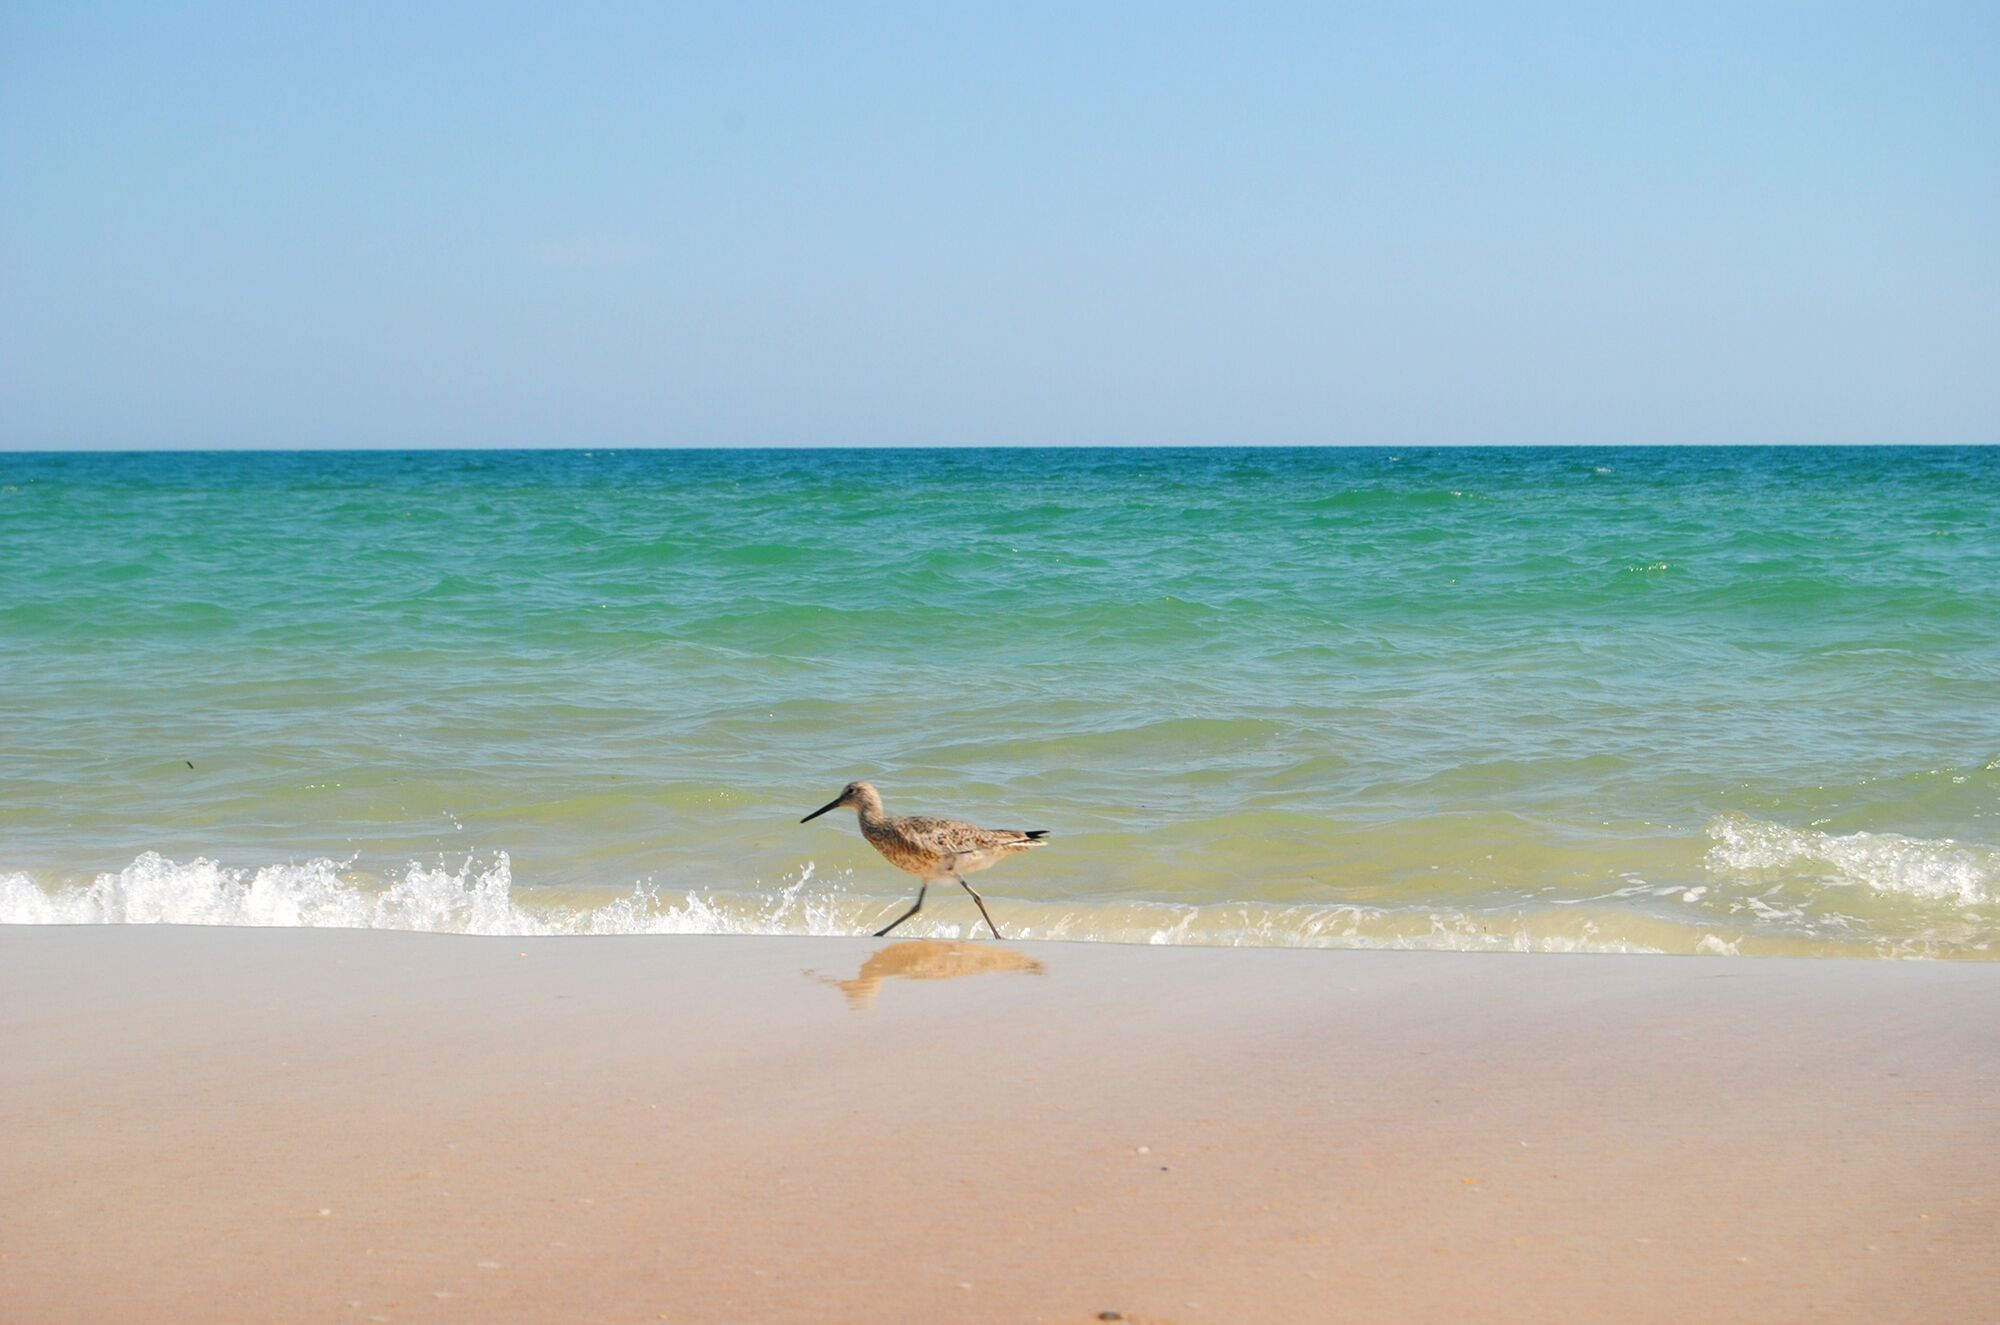 This Is One Of The Best Florida Winter Vacations St George Island Florida Winter Vacation St George Island Florida Florida In December